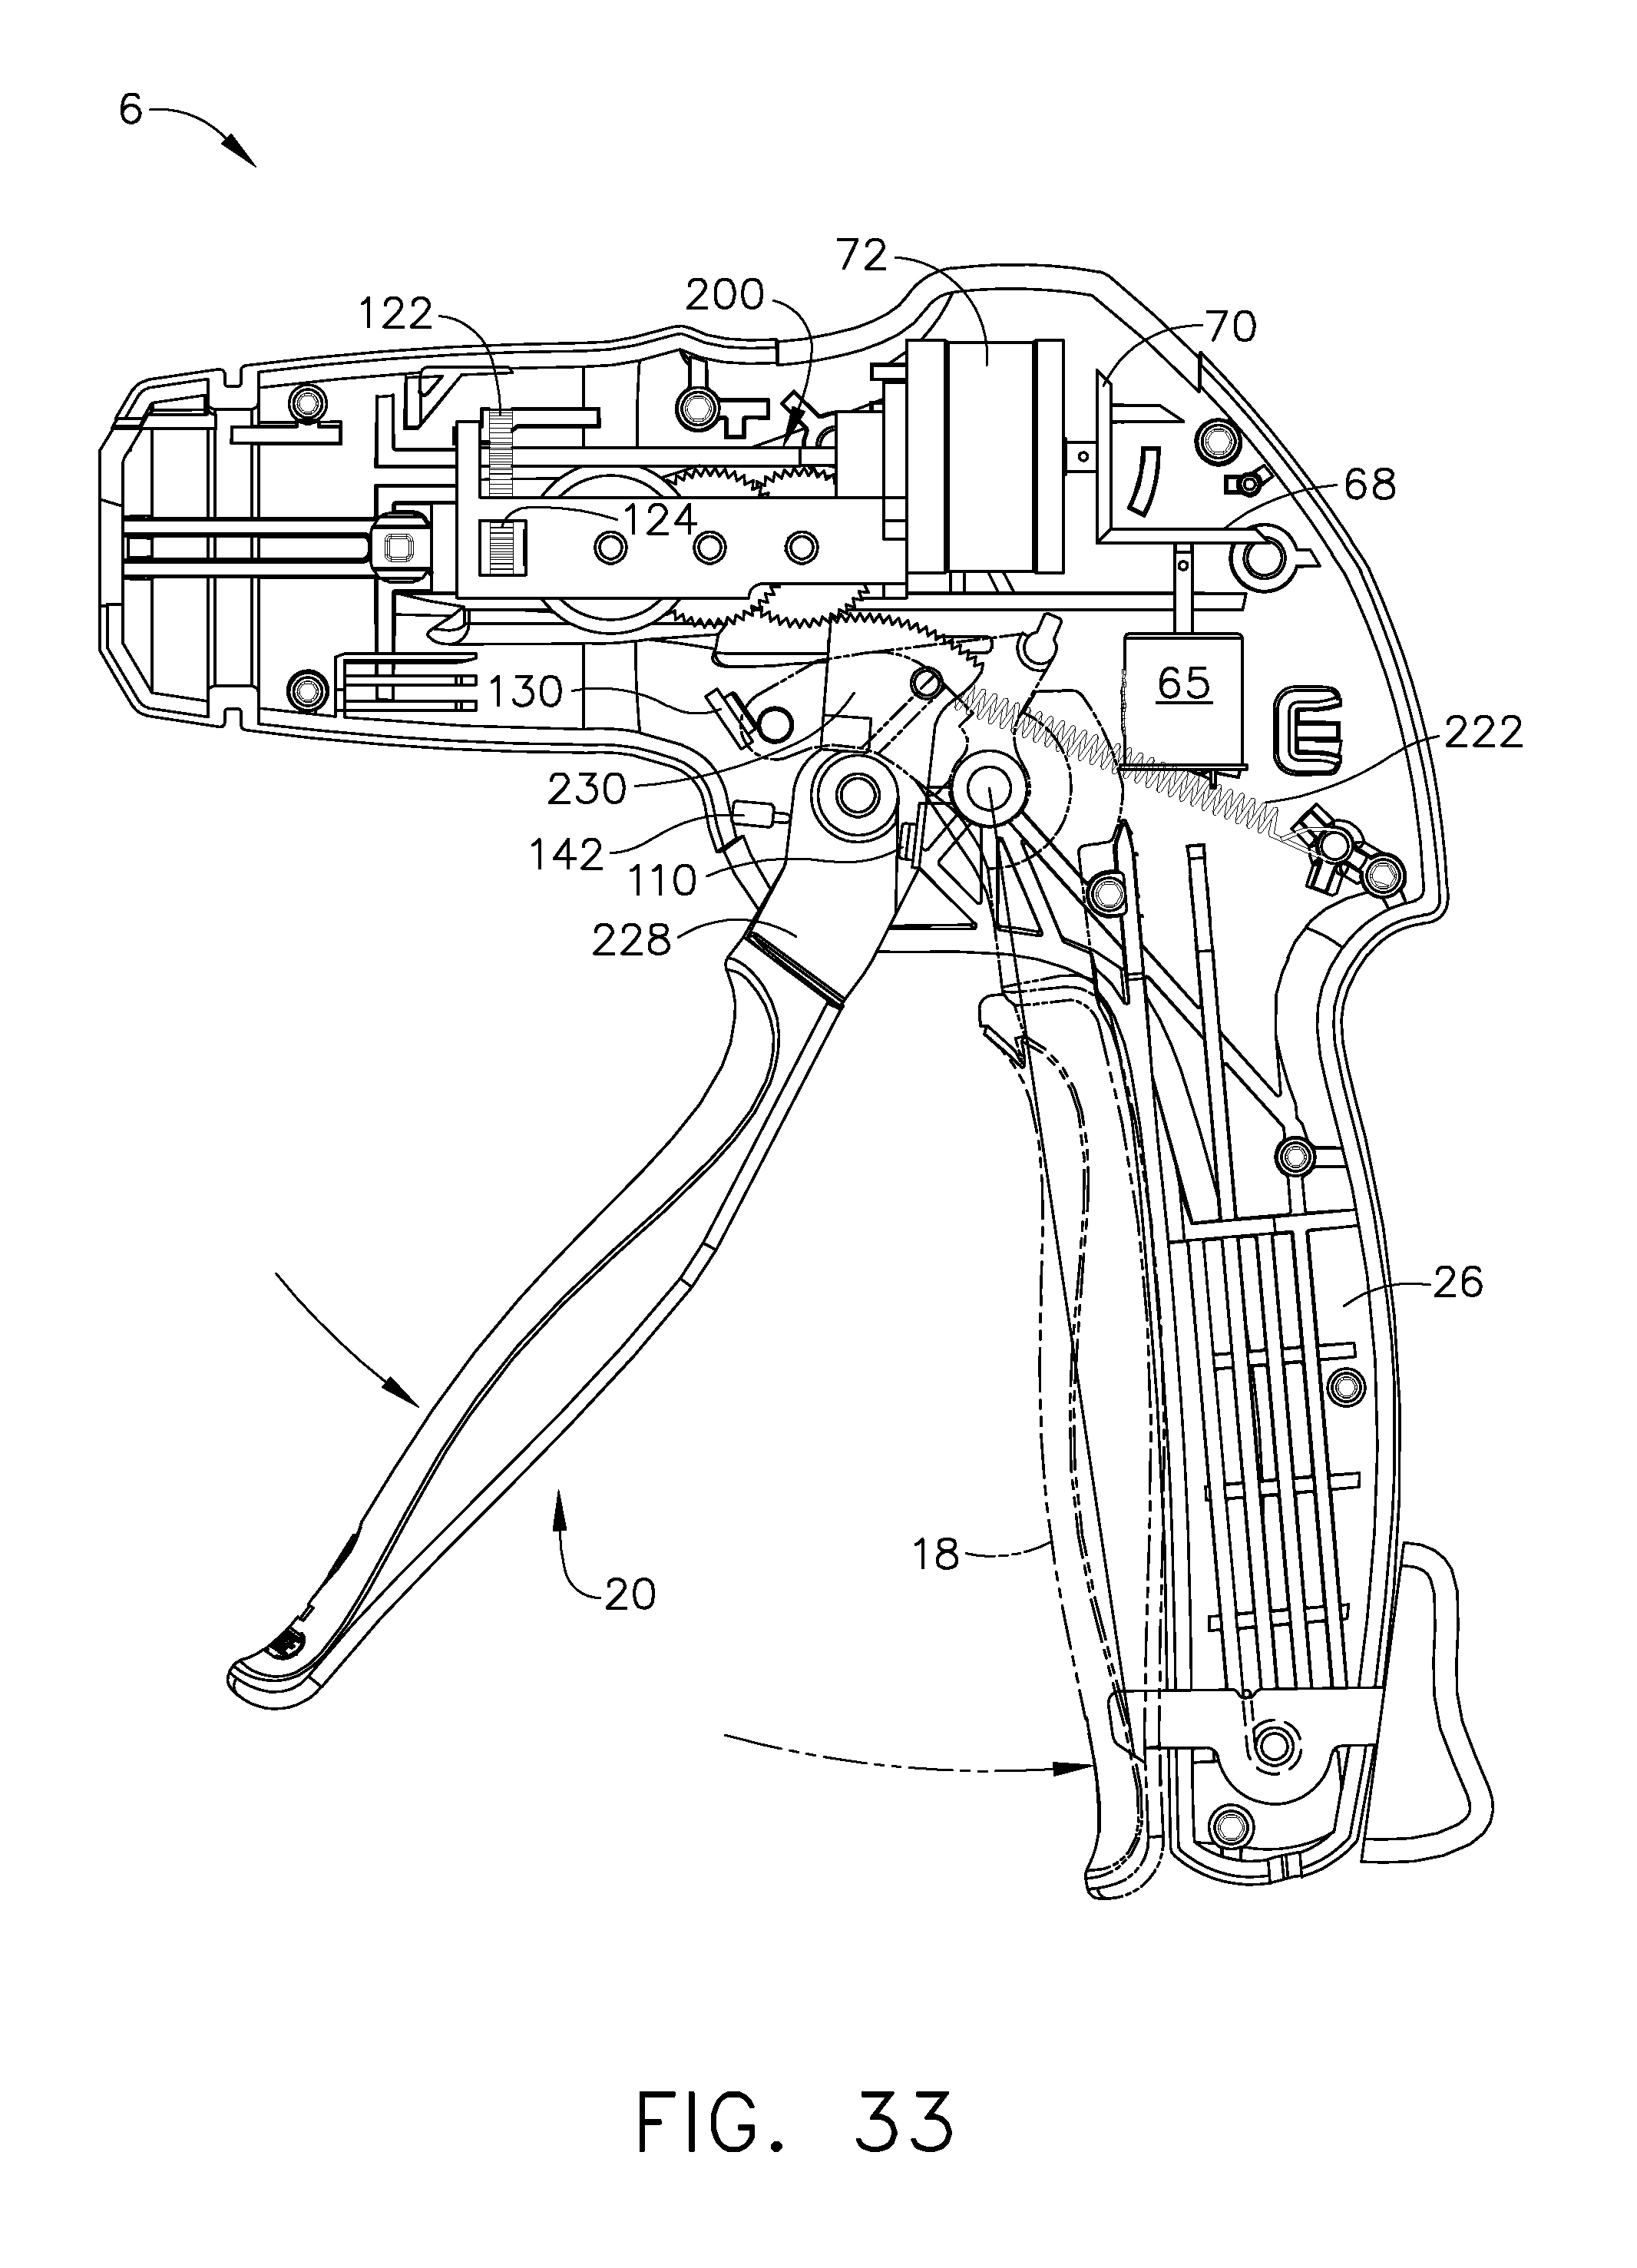 us8292155b2 motor driven surgical cutting and fastening instrumentus8292155b2 motor driven surgical cutting and fastening instrument with tactile position feedback google patents